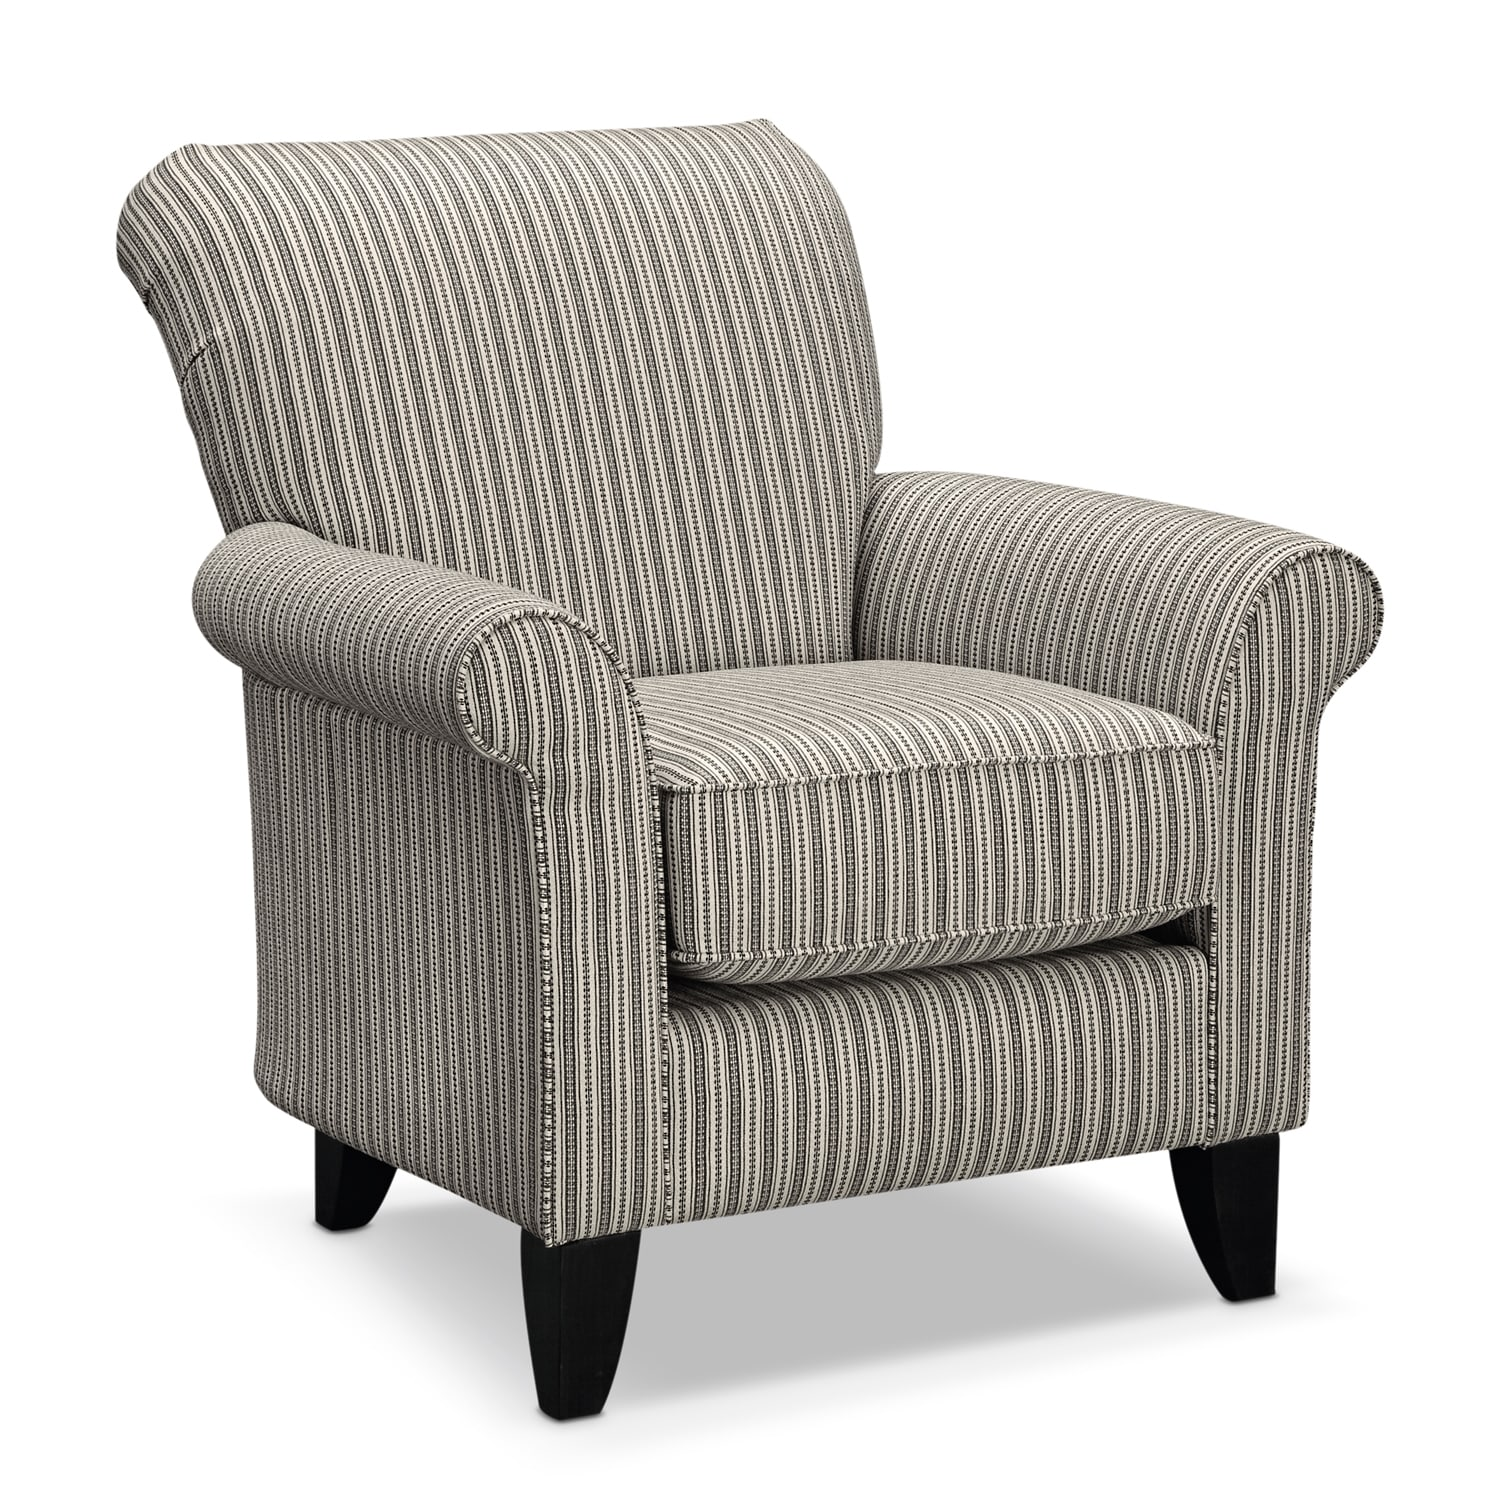 Accent Furniture For Living Room: Colette Accent Chair - Gray Stripe